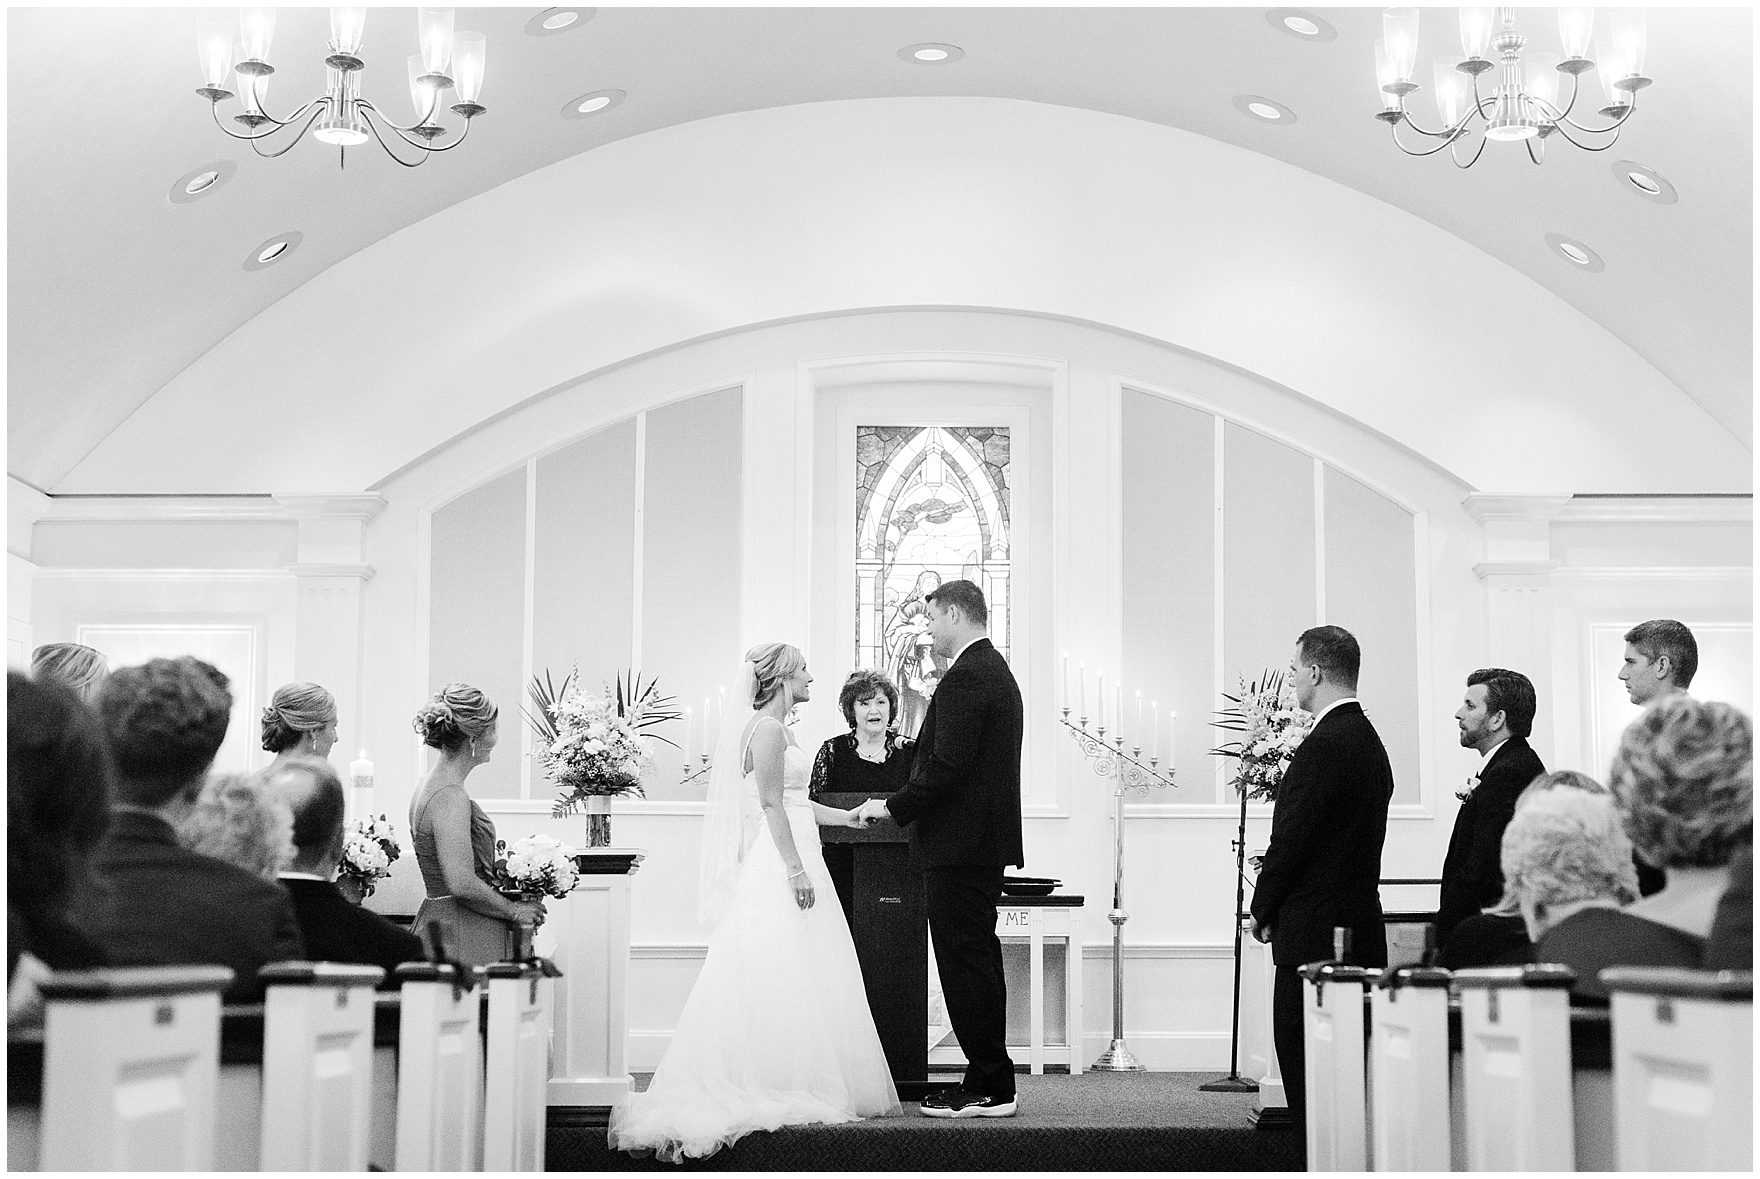 The bride and groom say their vows at the First Presbyterian Church of Itasca during their Itasca Country Club Illinois wedding.